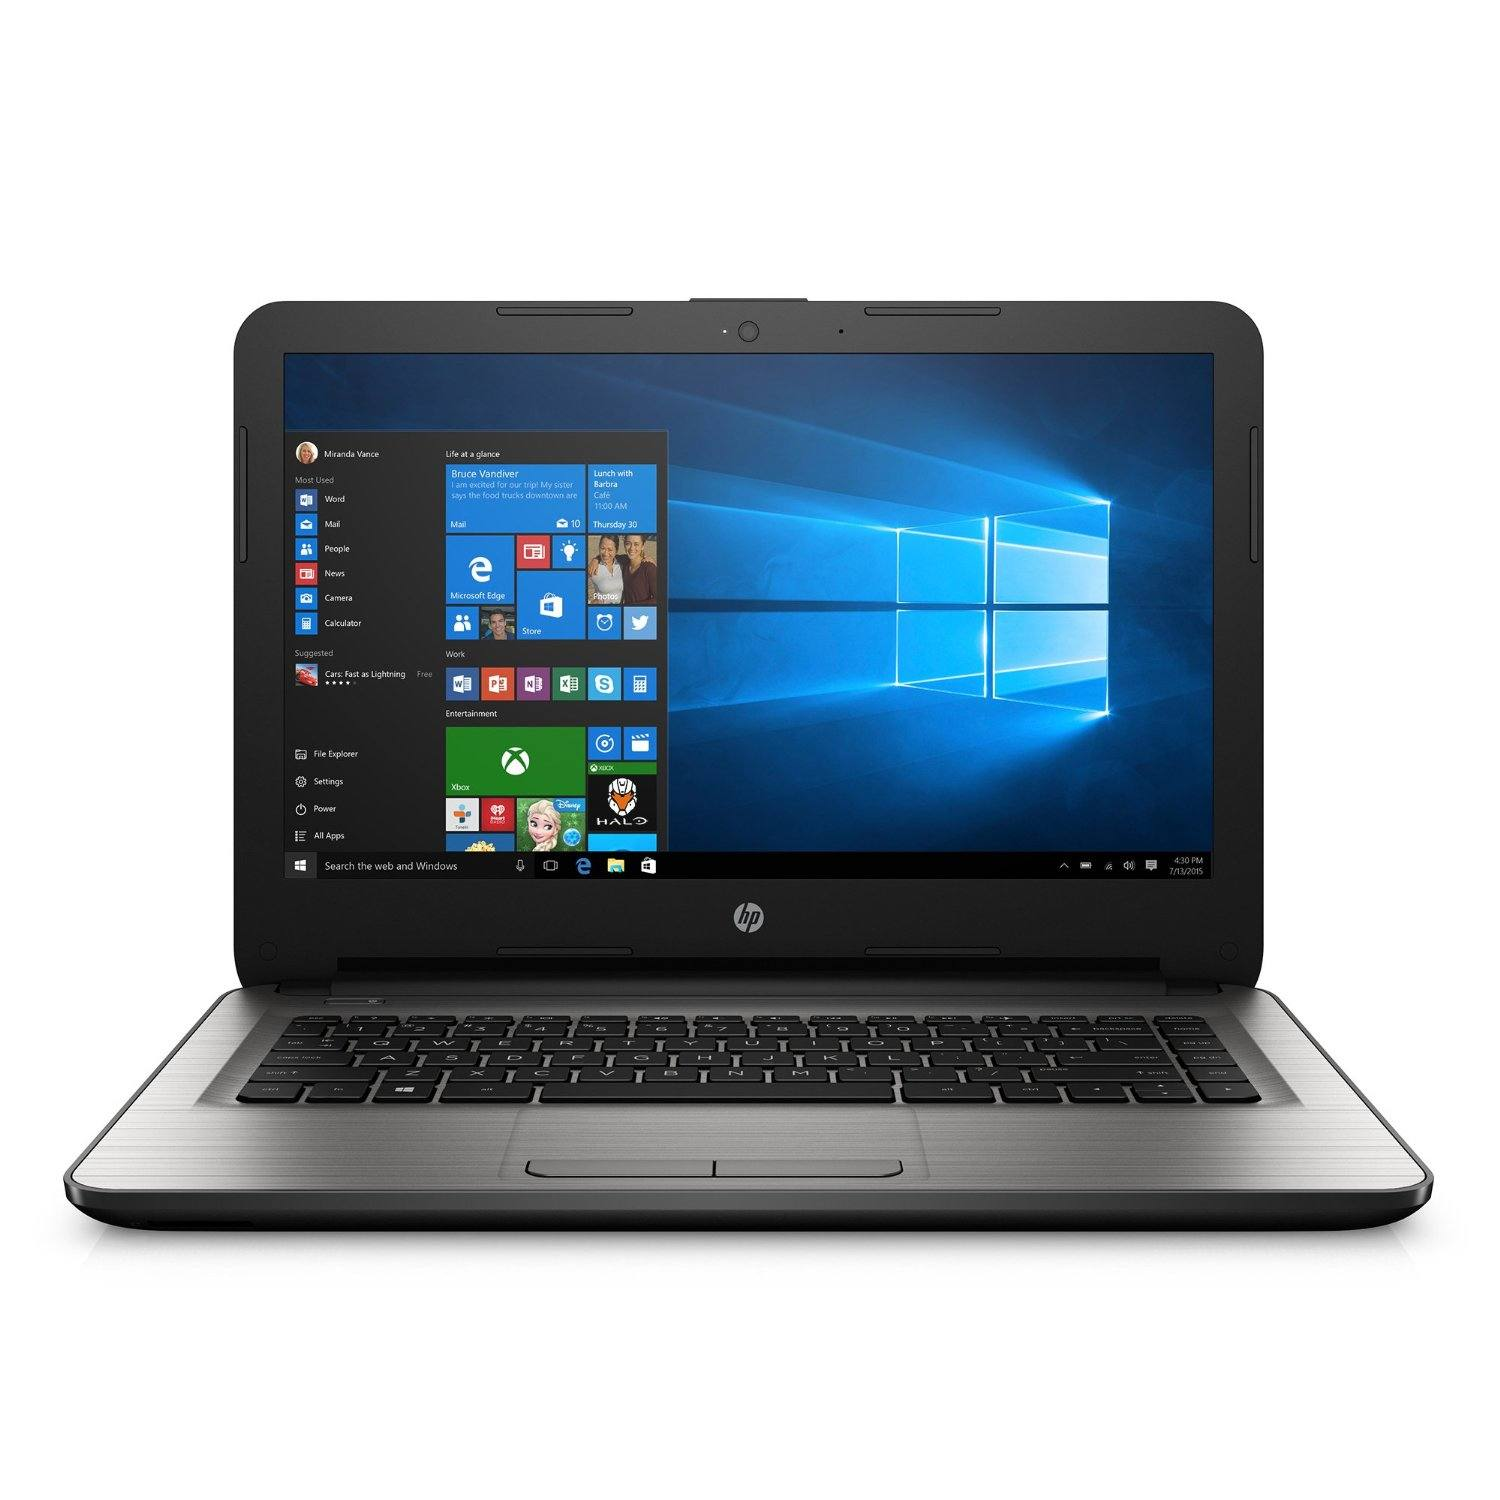 Best student laptops the 10 best laptops for college students | TechRadar